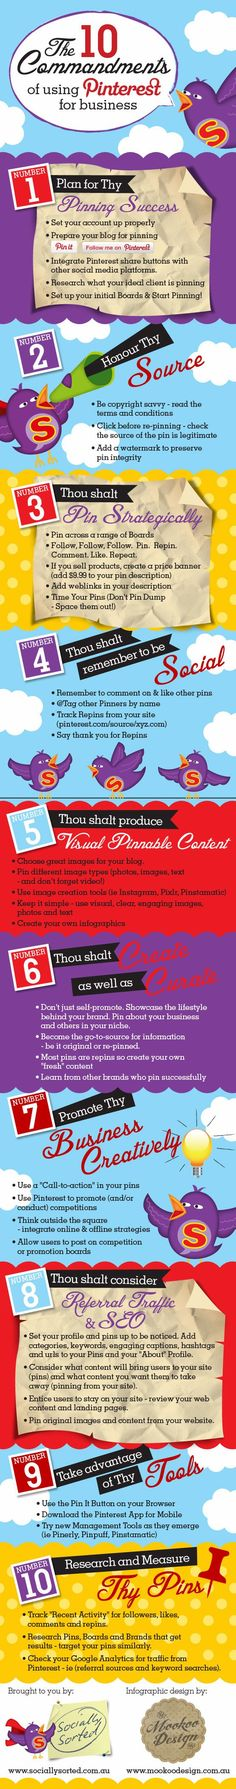 The 10 Commandments of using Pinterest for Business.